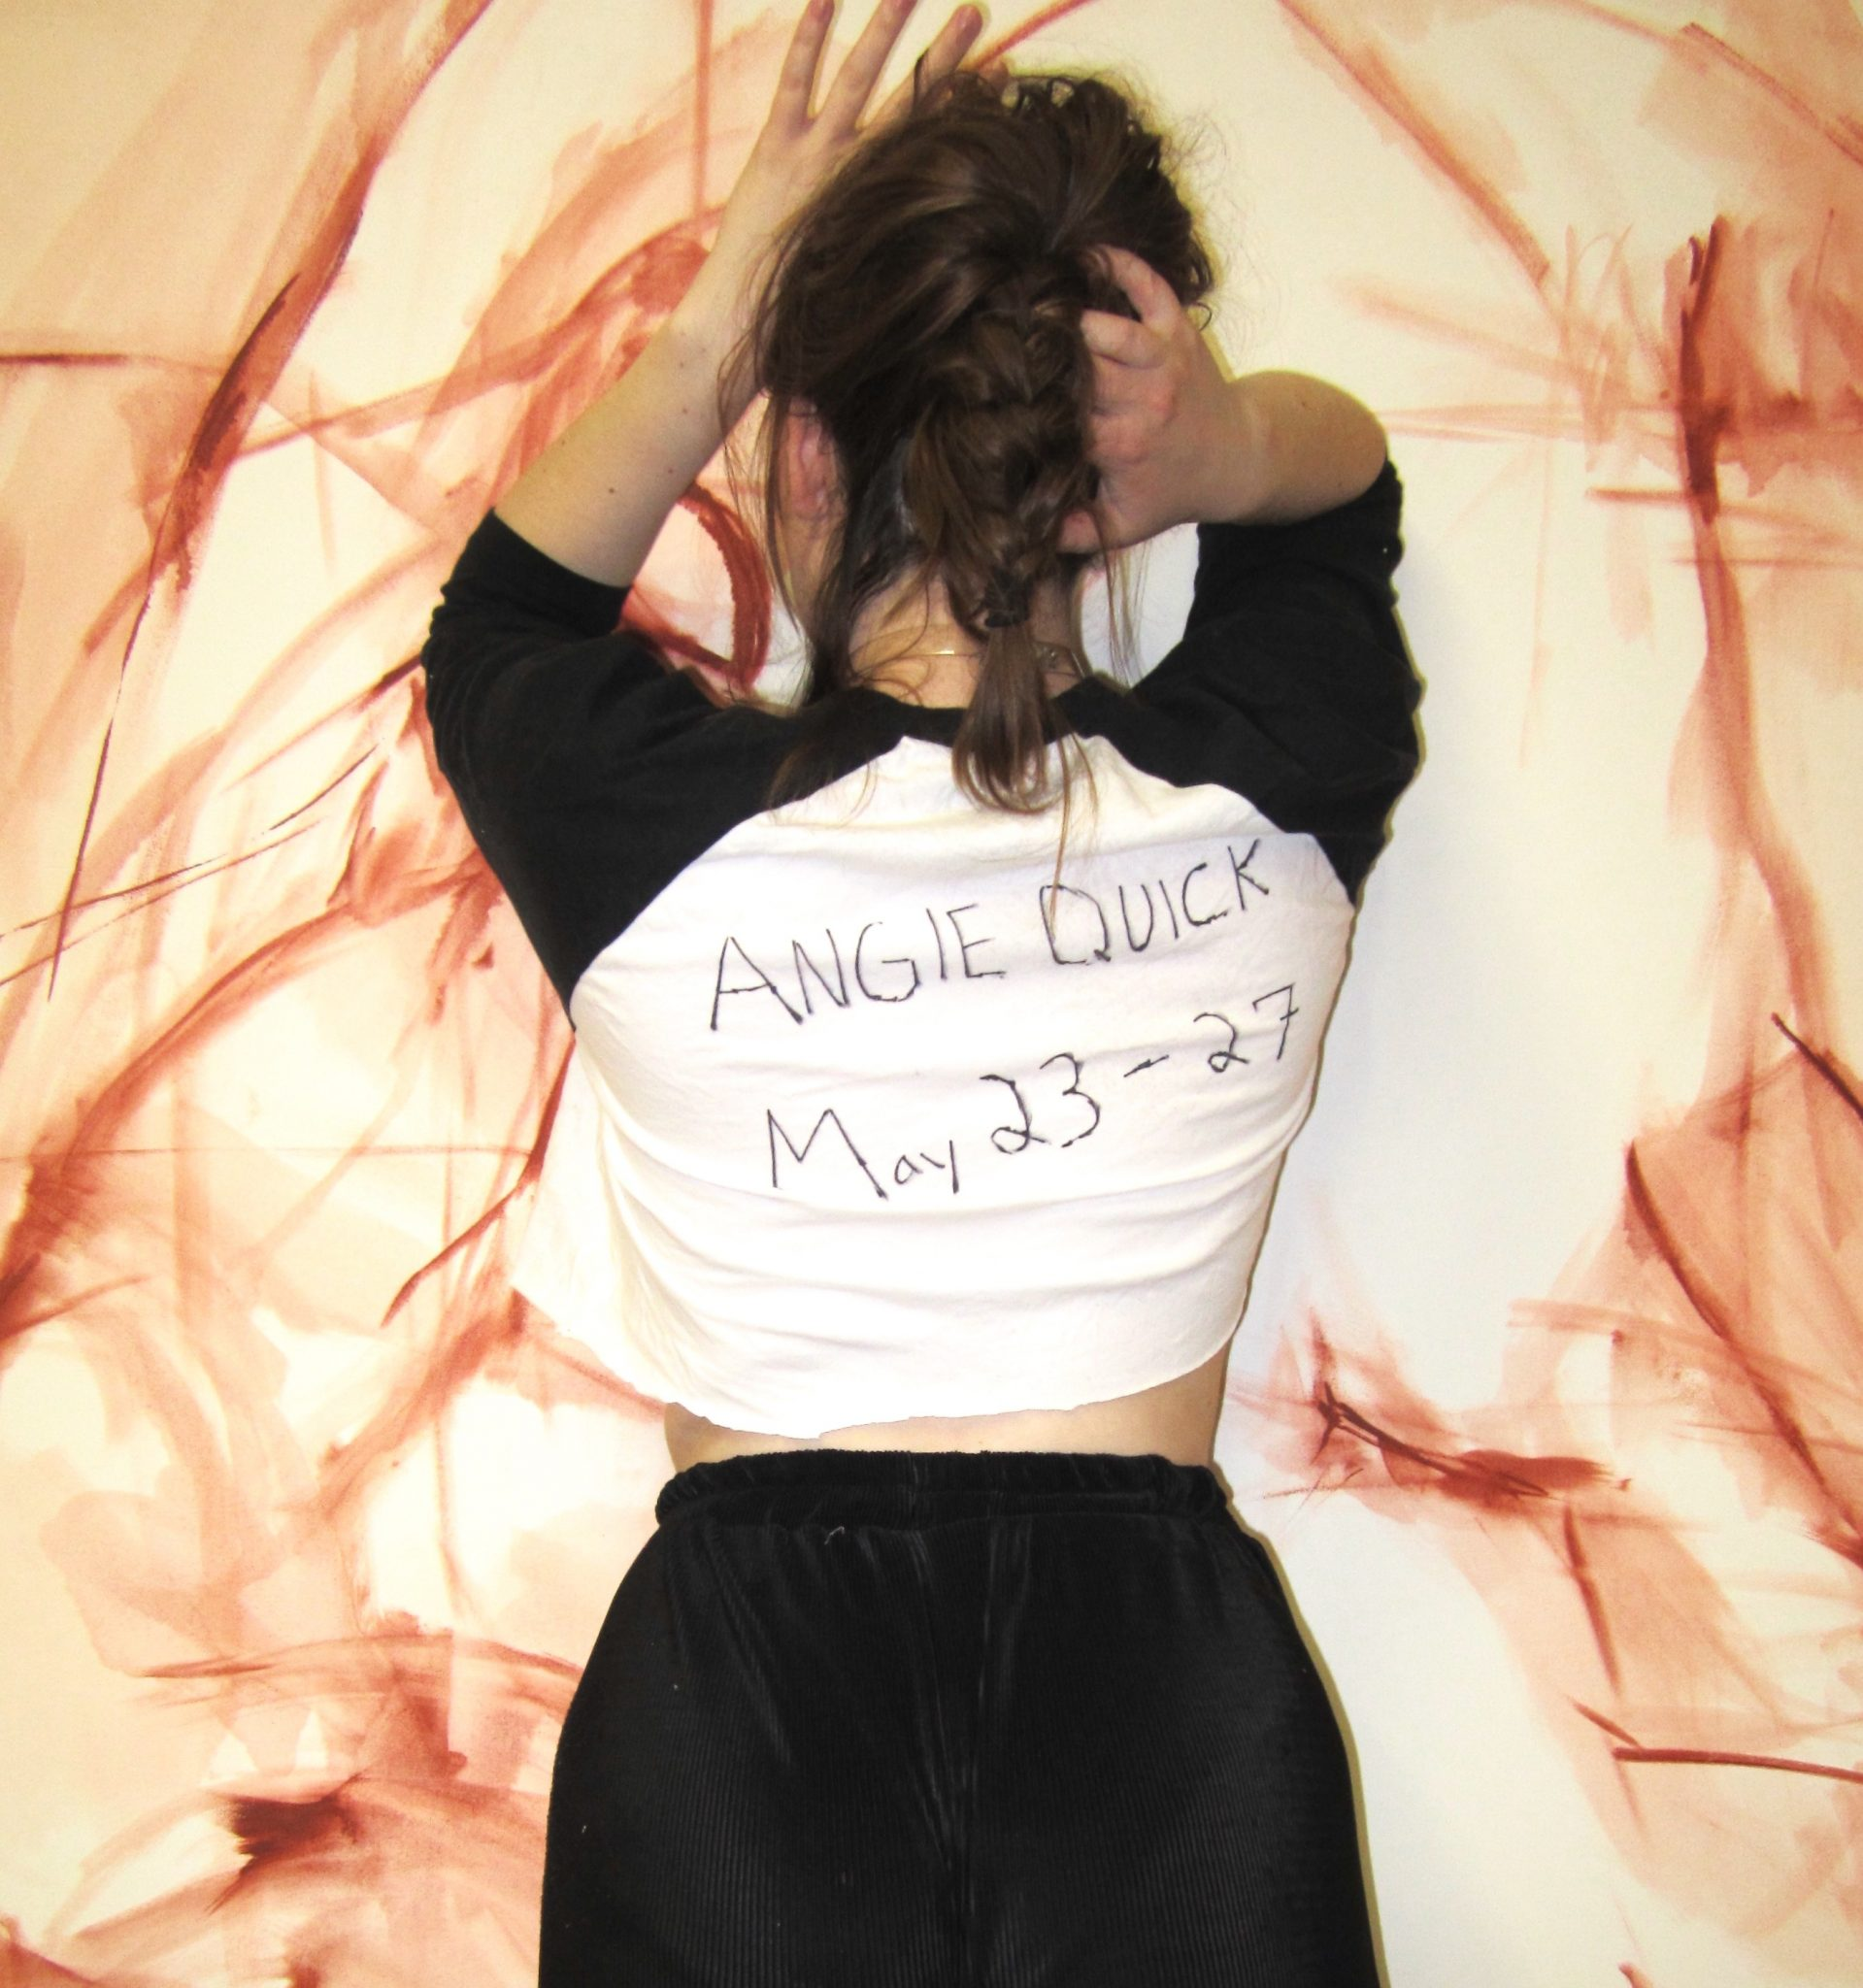 a woman stands with her back to the camera with the words 'angie quick May 23-27' on the back of her shirt